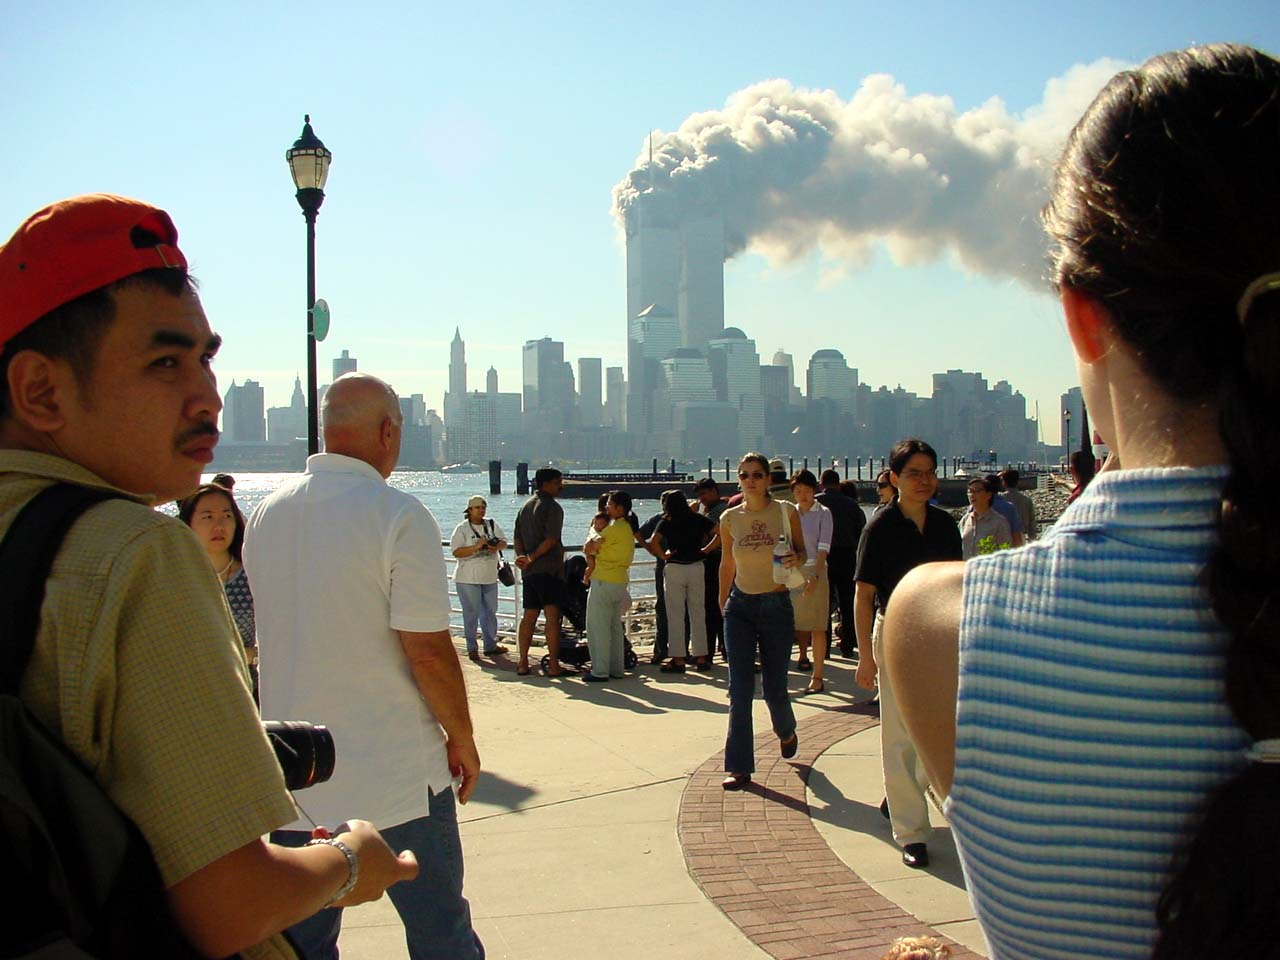 the tragic day of september 11 2001 In may 2011, us military forces in pakistan killed osama bin laden—the leader of al qaeda, the international terrorist group that attacked the us on september 11, 2001 understanding september 11.